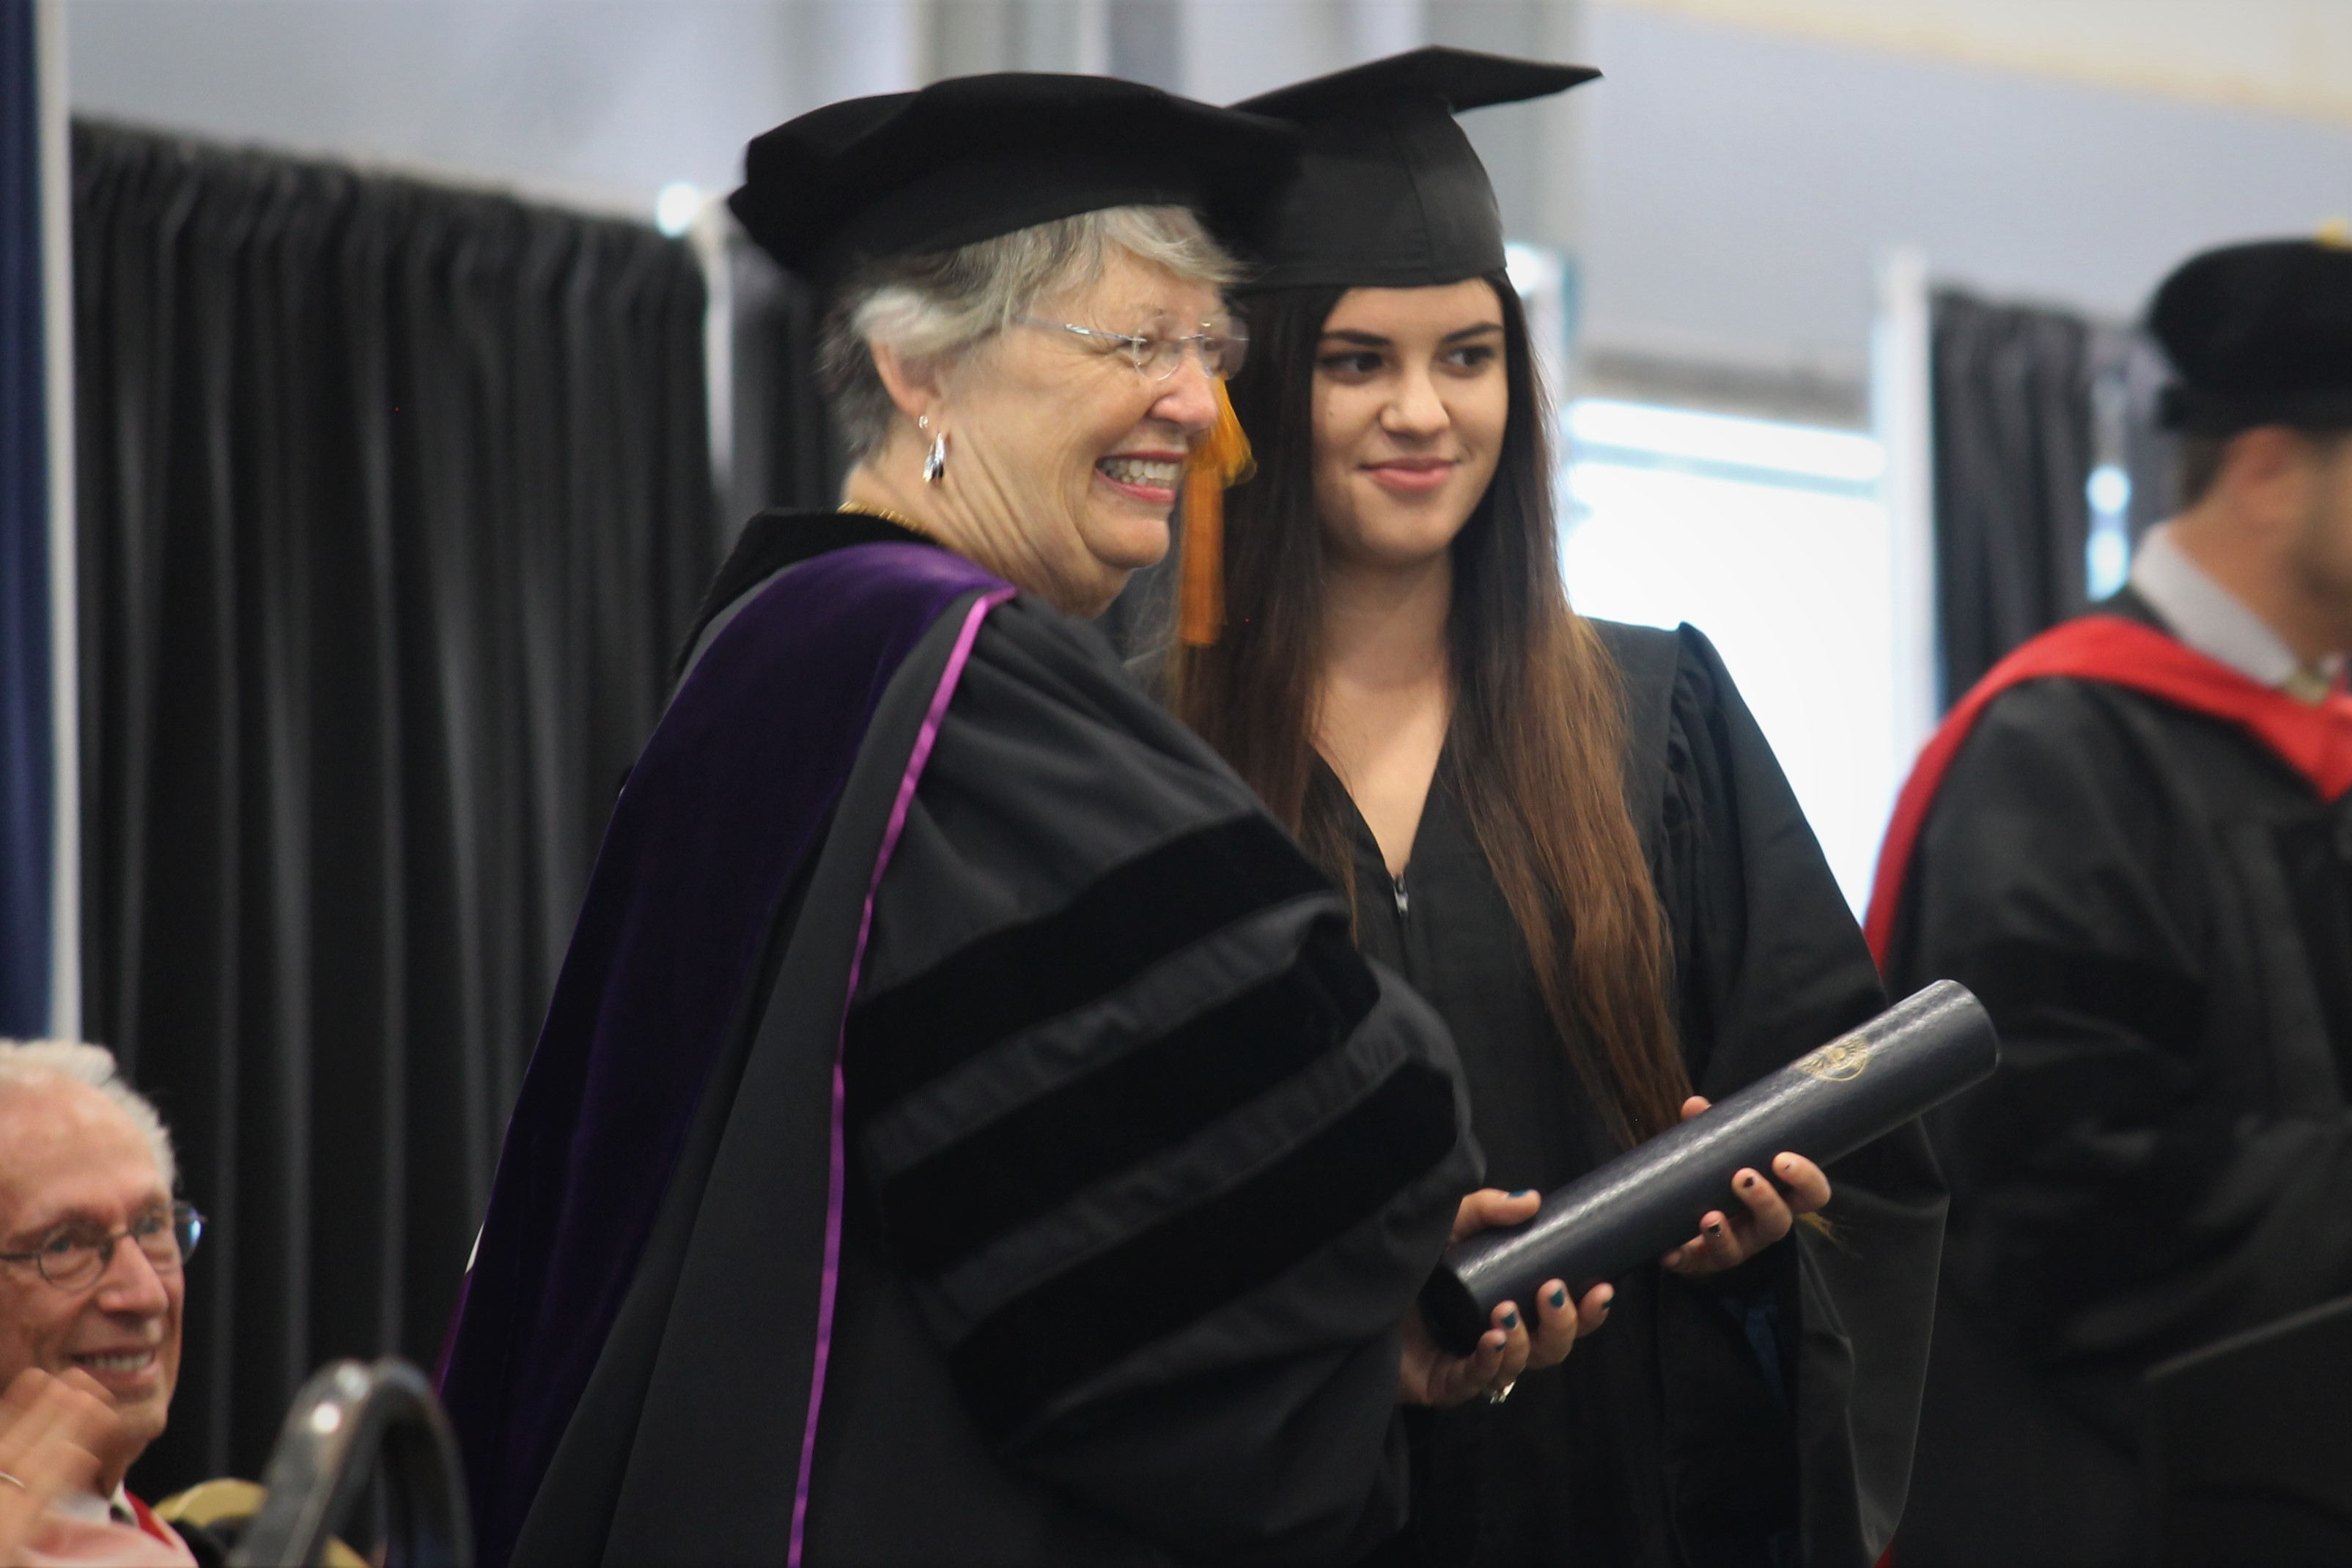 Hocking College Summer 2019 Commencement Ceremony